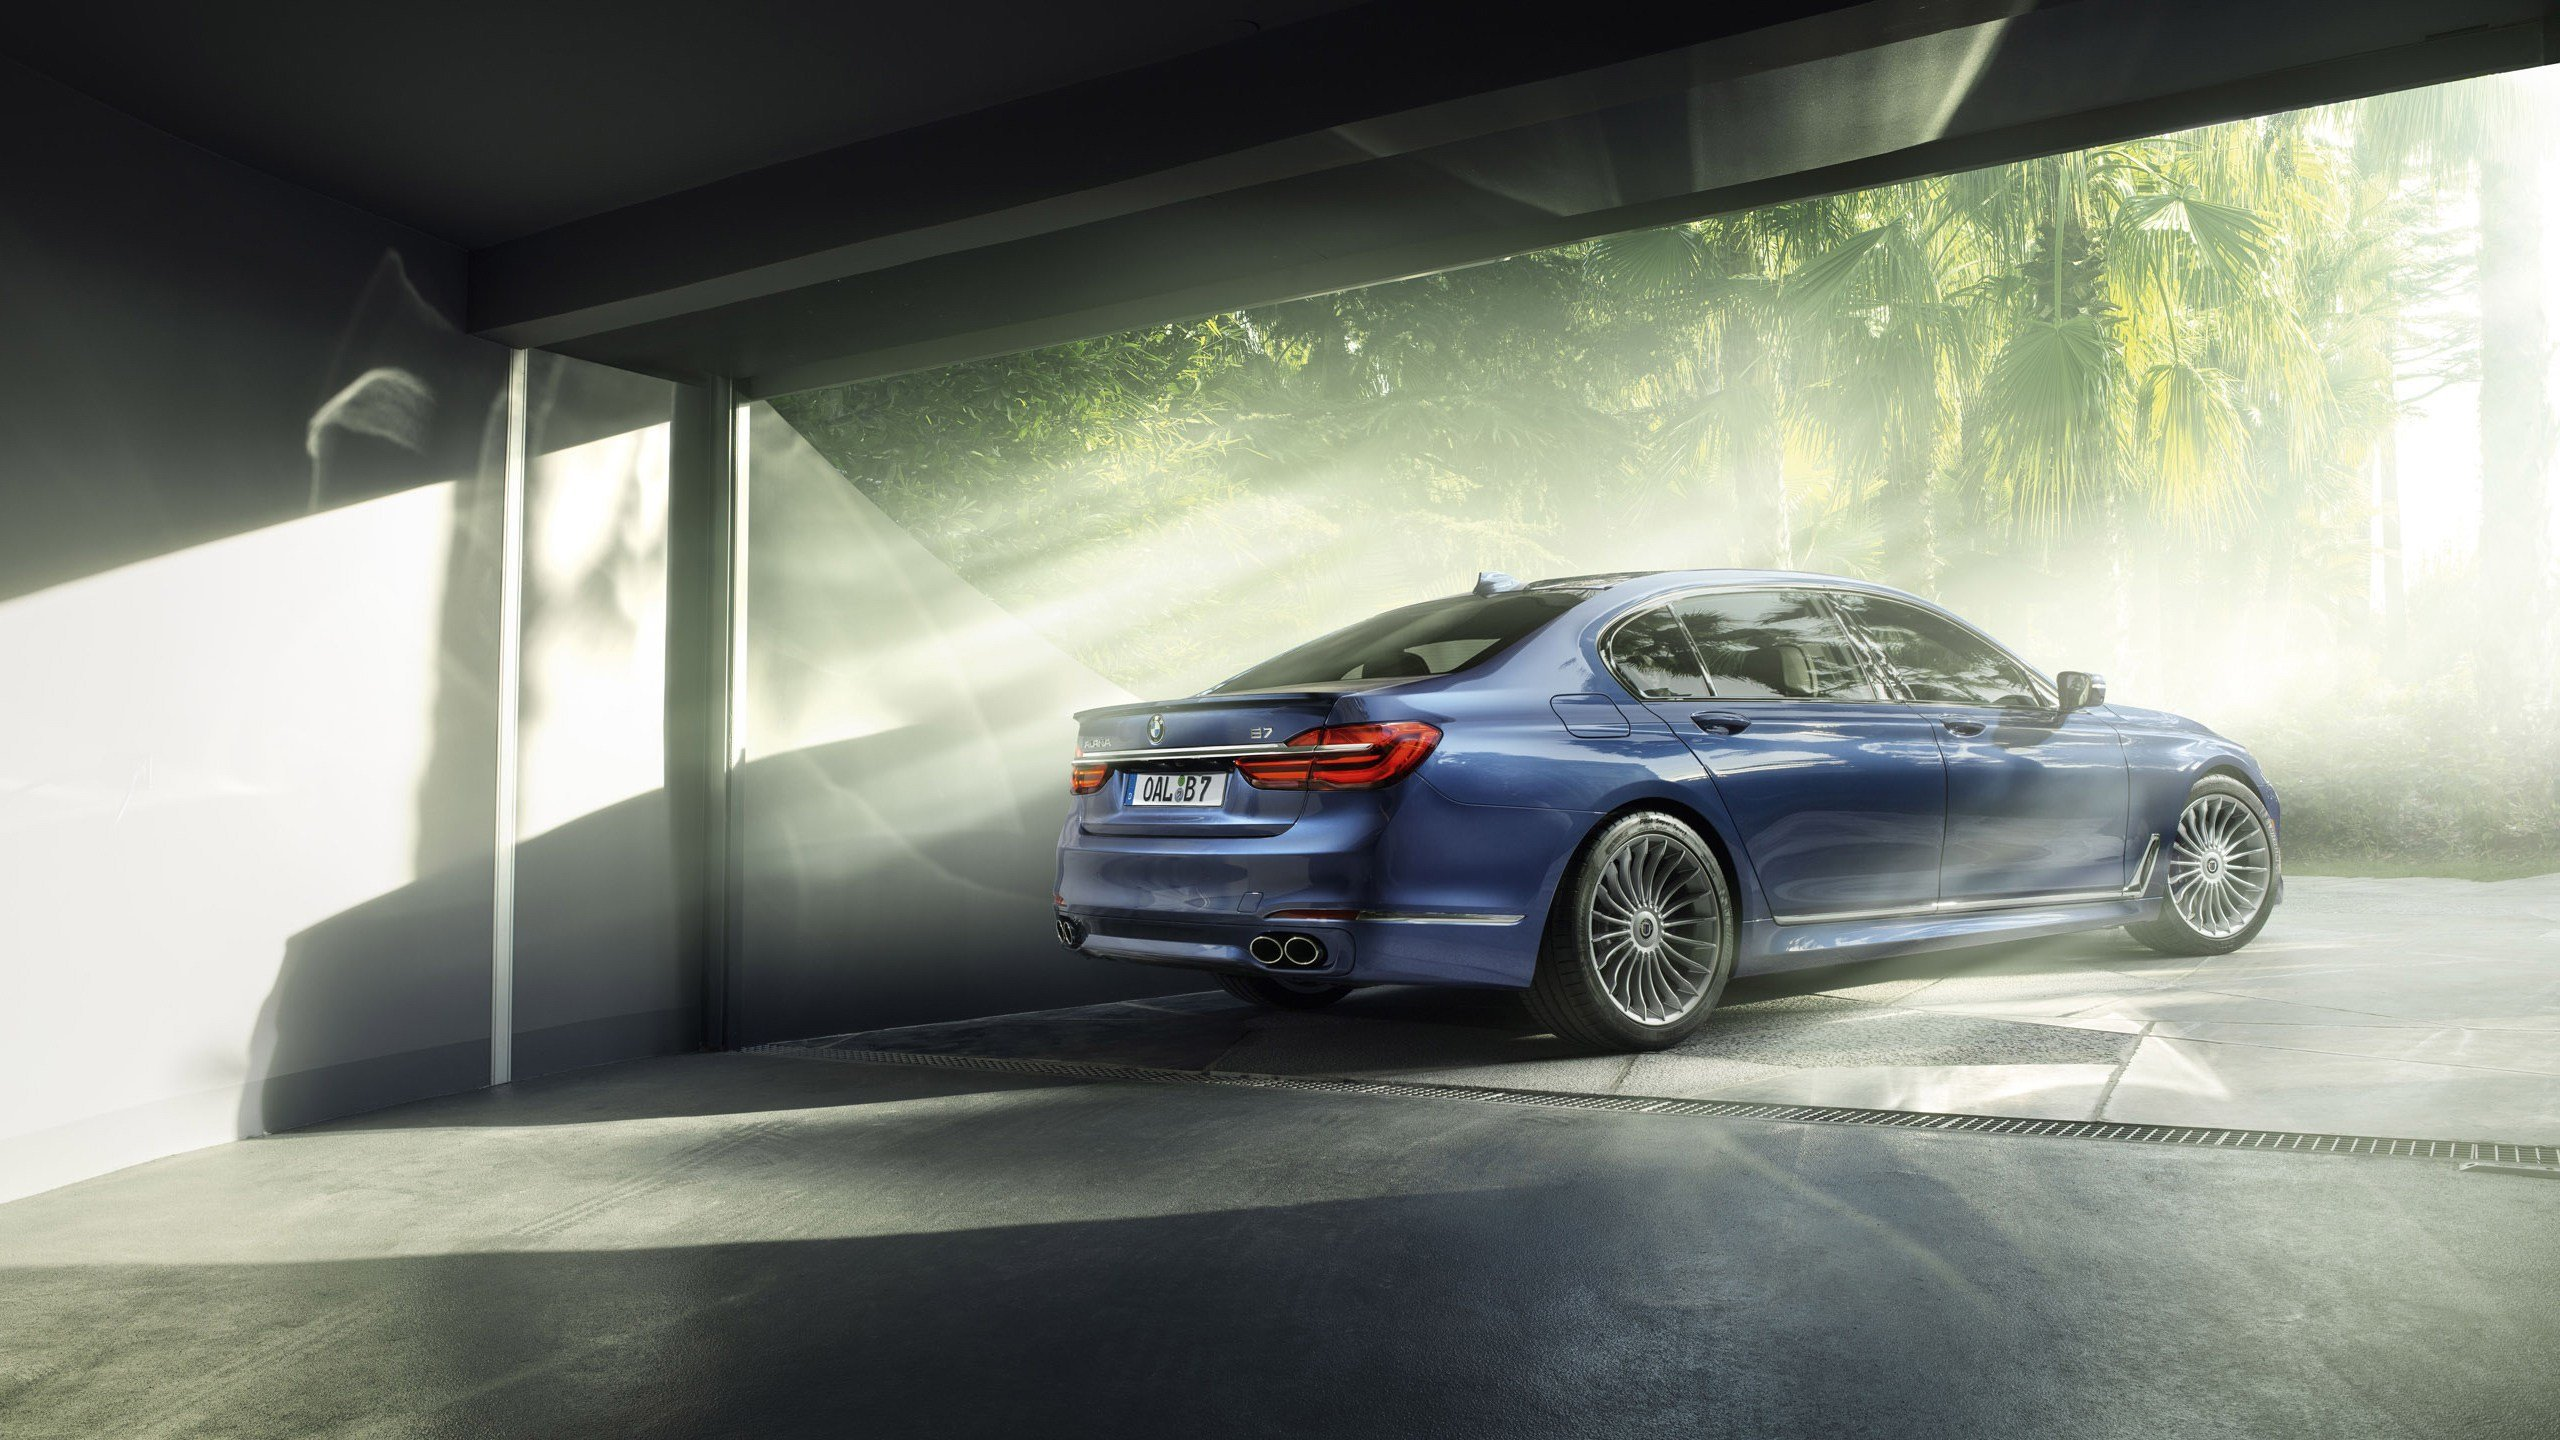 Latest 2016 Bmw Alpina B7 Bi Turbo Rear Wallpaper Hd Car Free Download